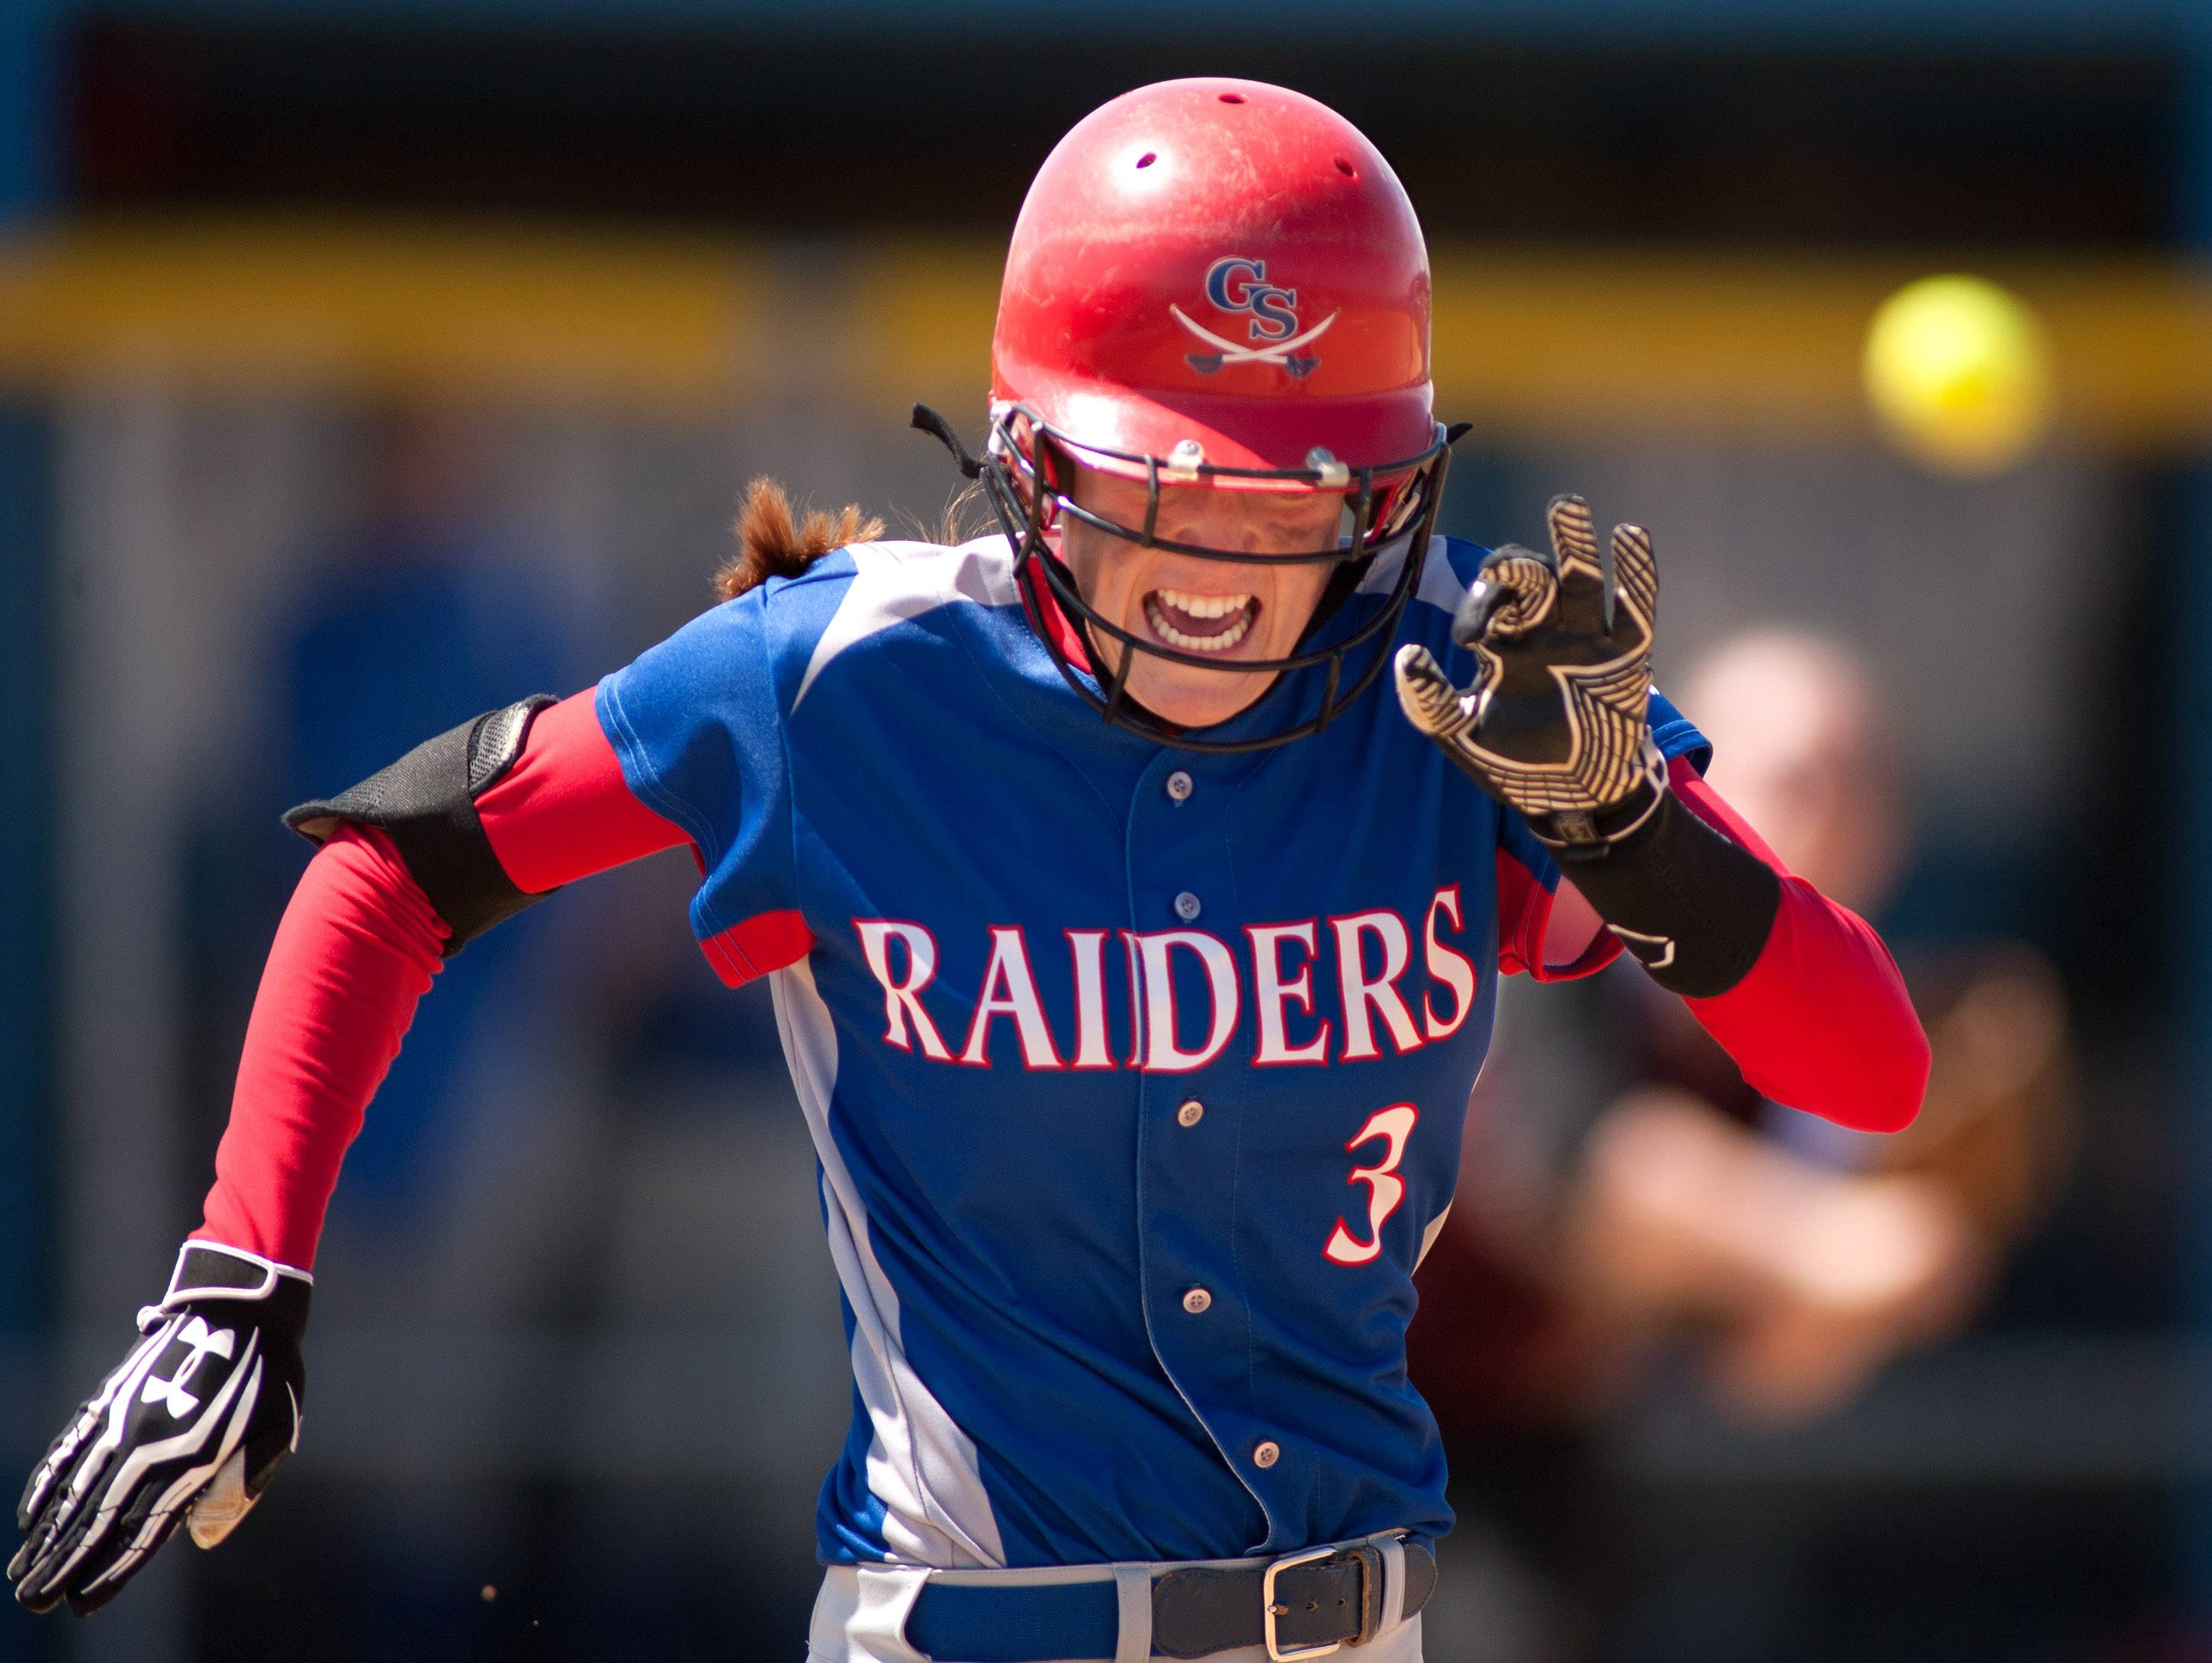 Glenbard South's Tricia Weigand legs out an infield single against Morton during girls softball action in Lombard.